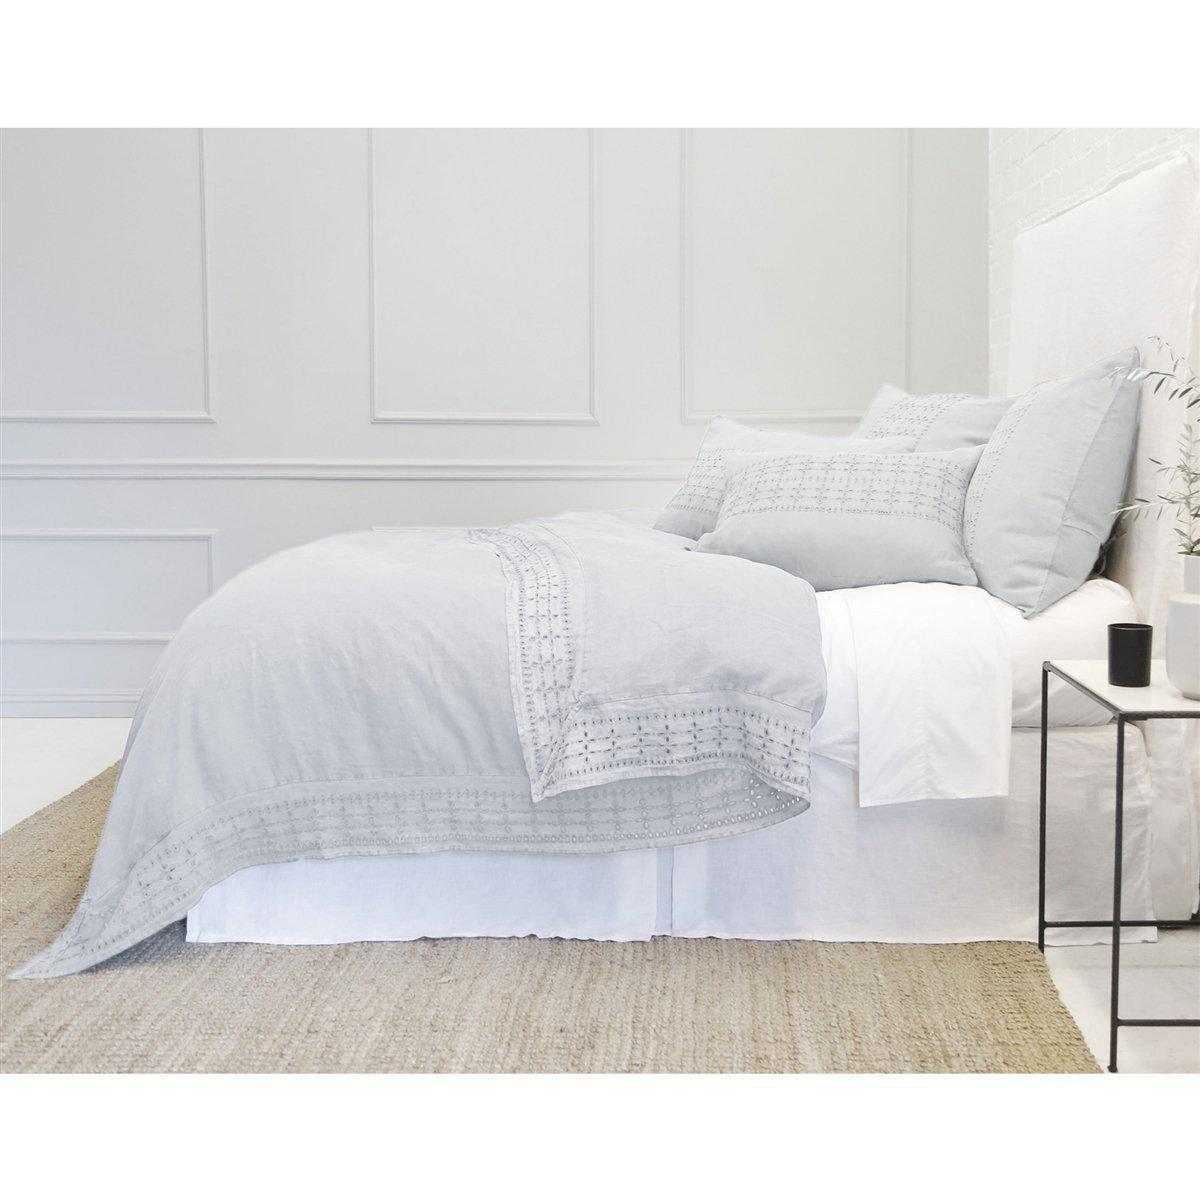 Layla Sham by Pom Pom at Home-Bed & Bath-A Cottage in the City